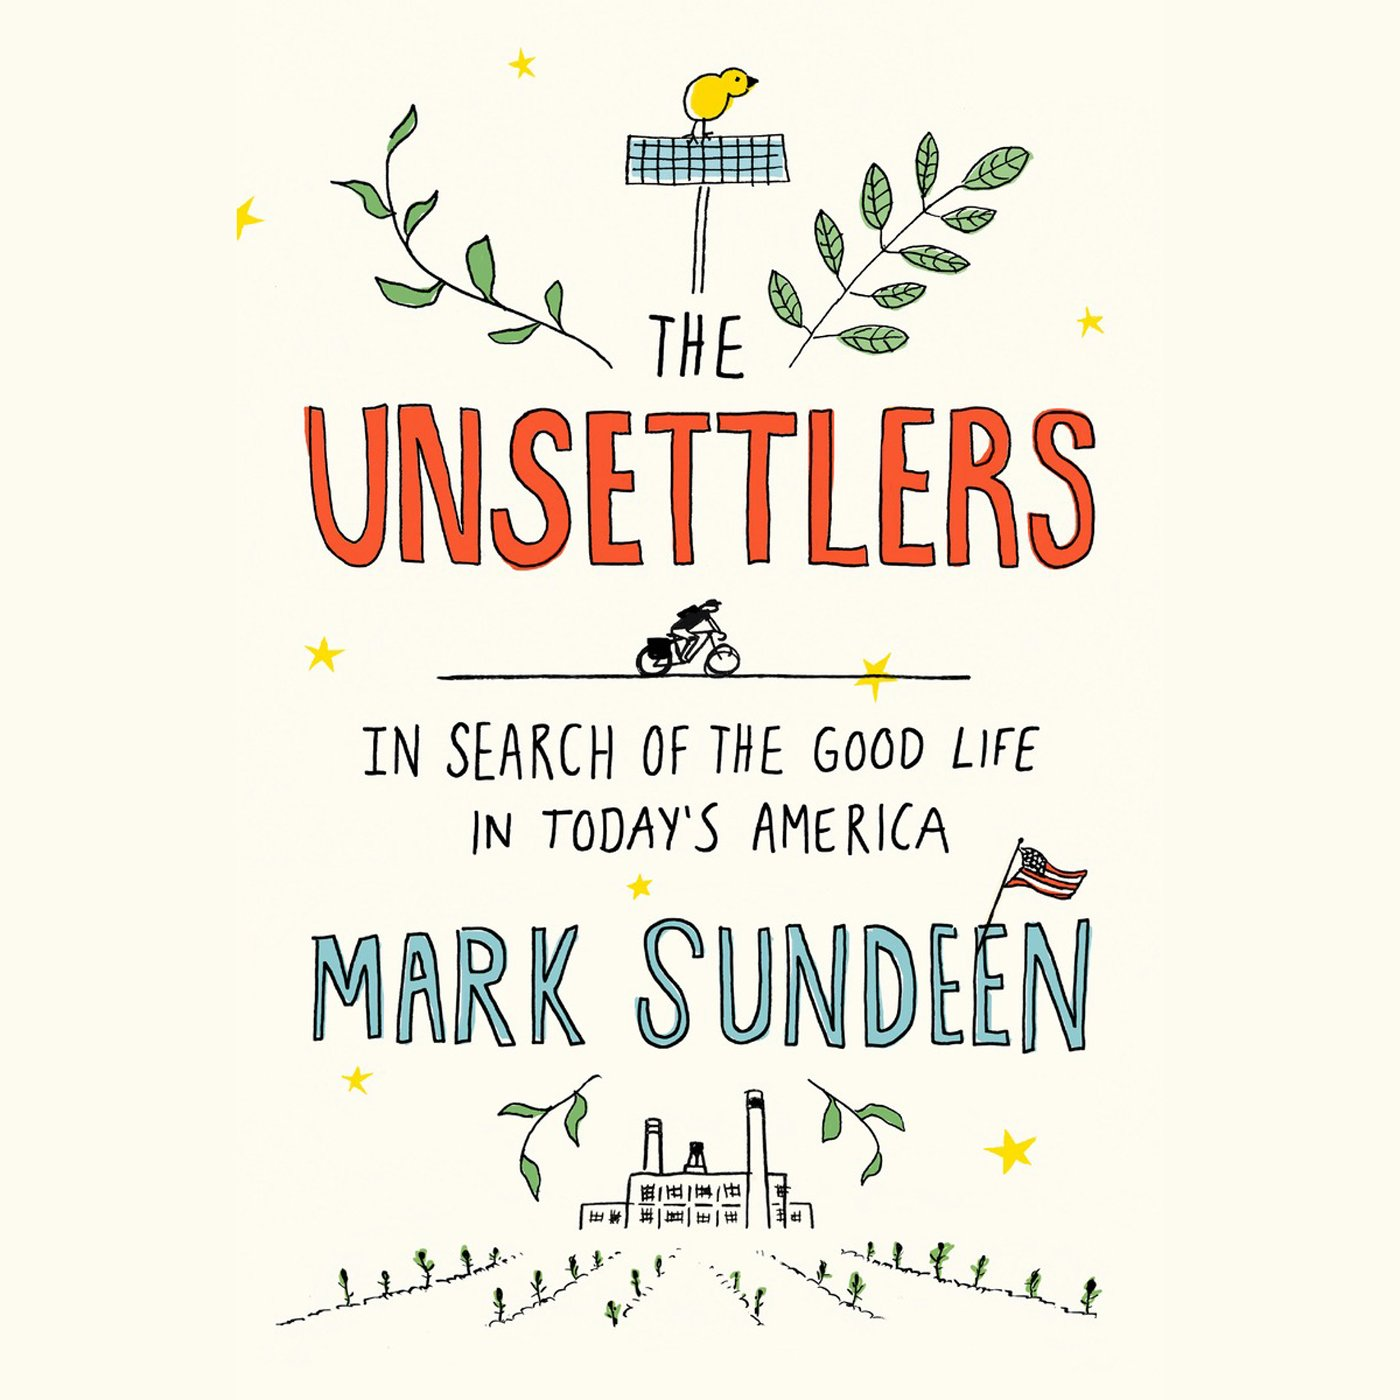 The Unsettlers: In Search of the Good Life in Today's America